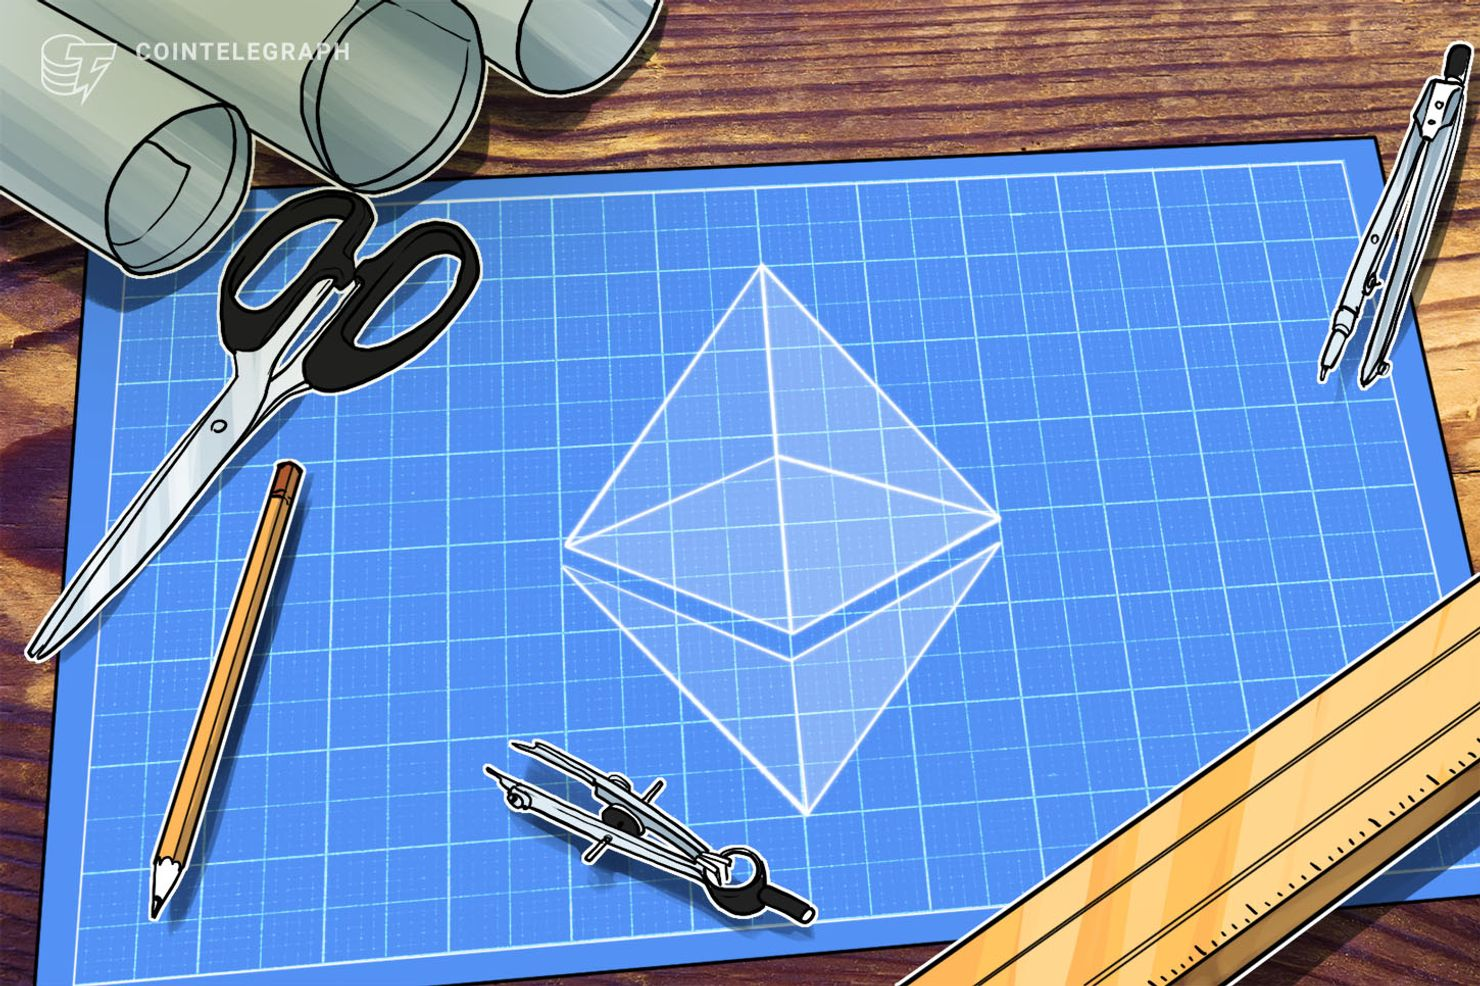 BitMEX Research Finds 'Potential Bug' in Syncing of Ethereum Parity Full Node